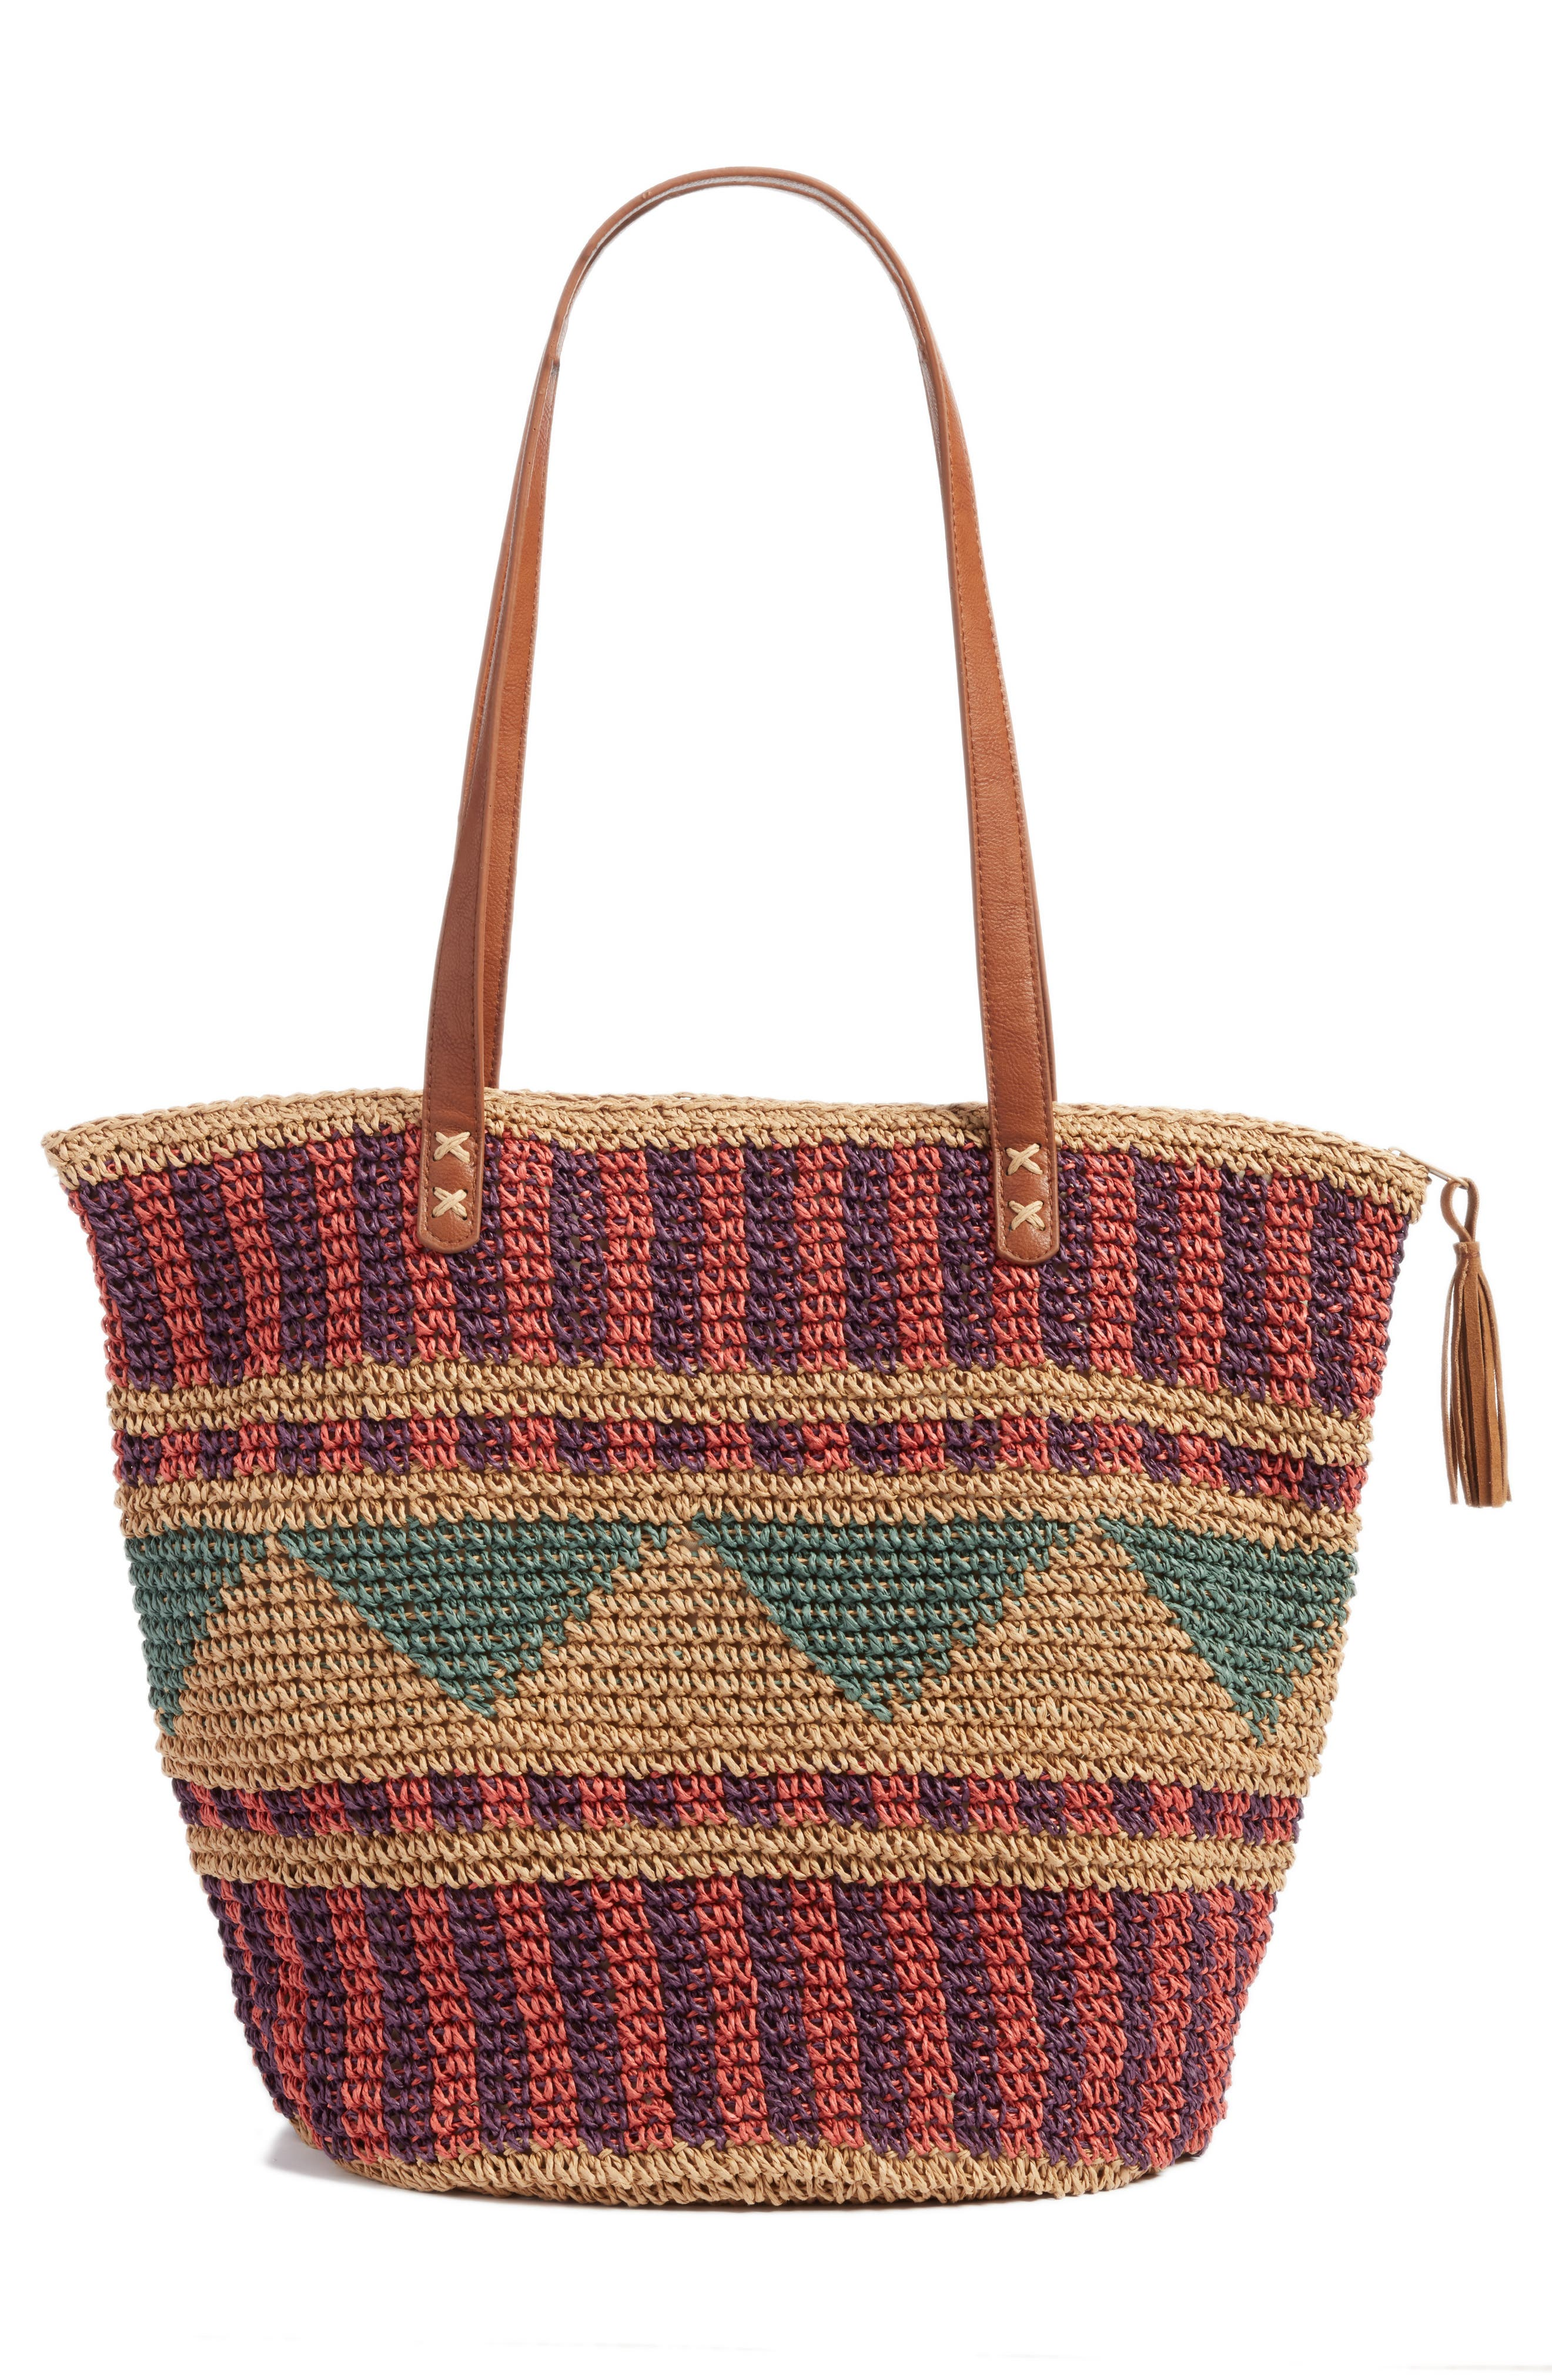 East of Dover Print Straw Tote,                             Alternate thumbnail 3, color,                             Rosewater